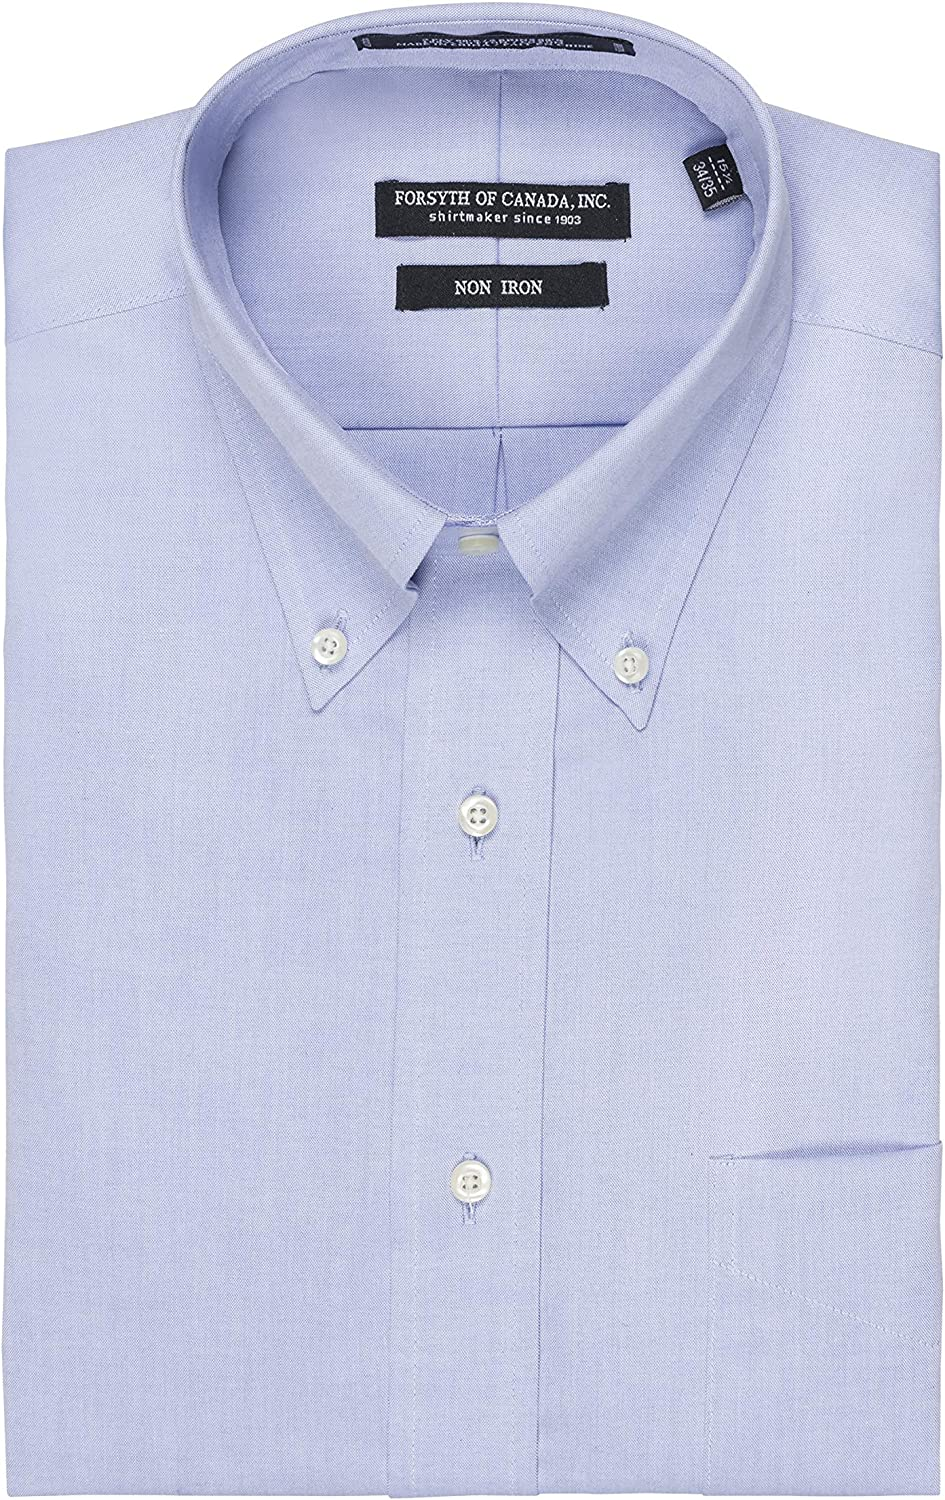 Forsyth of Canada Traditional Fit Non-Iron Long Sleeve Dress Shirt (Light Blue, 22